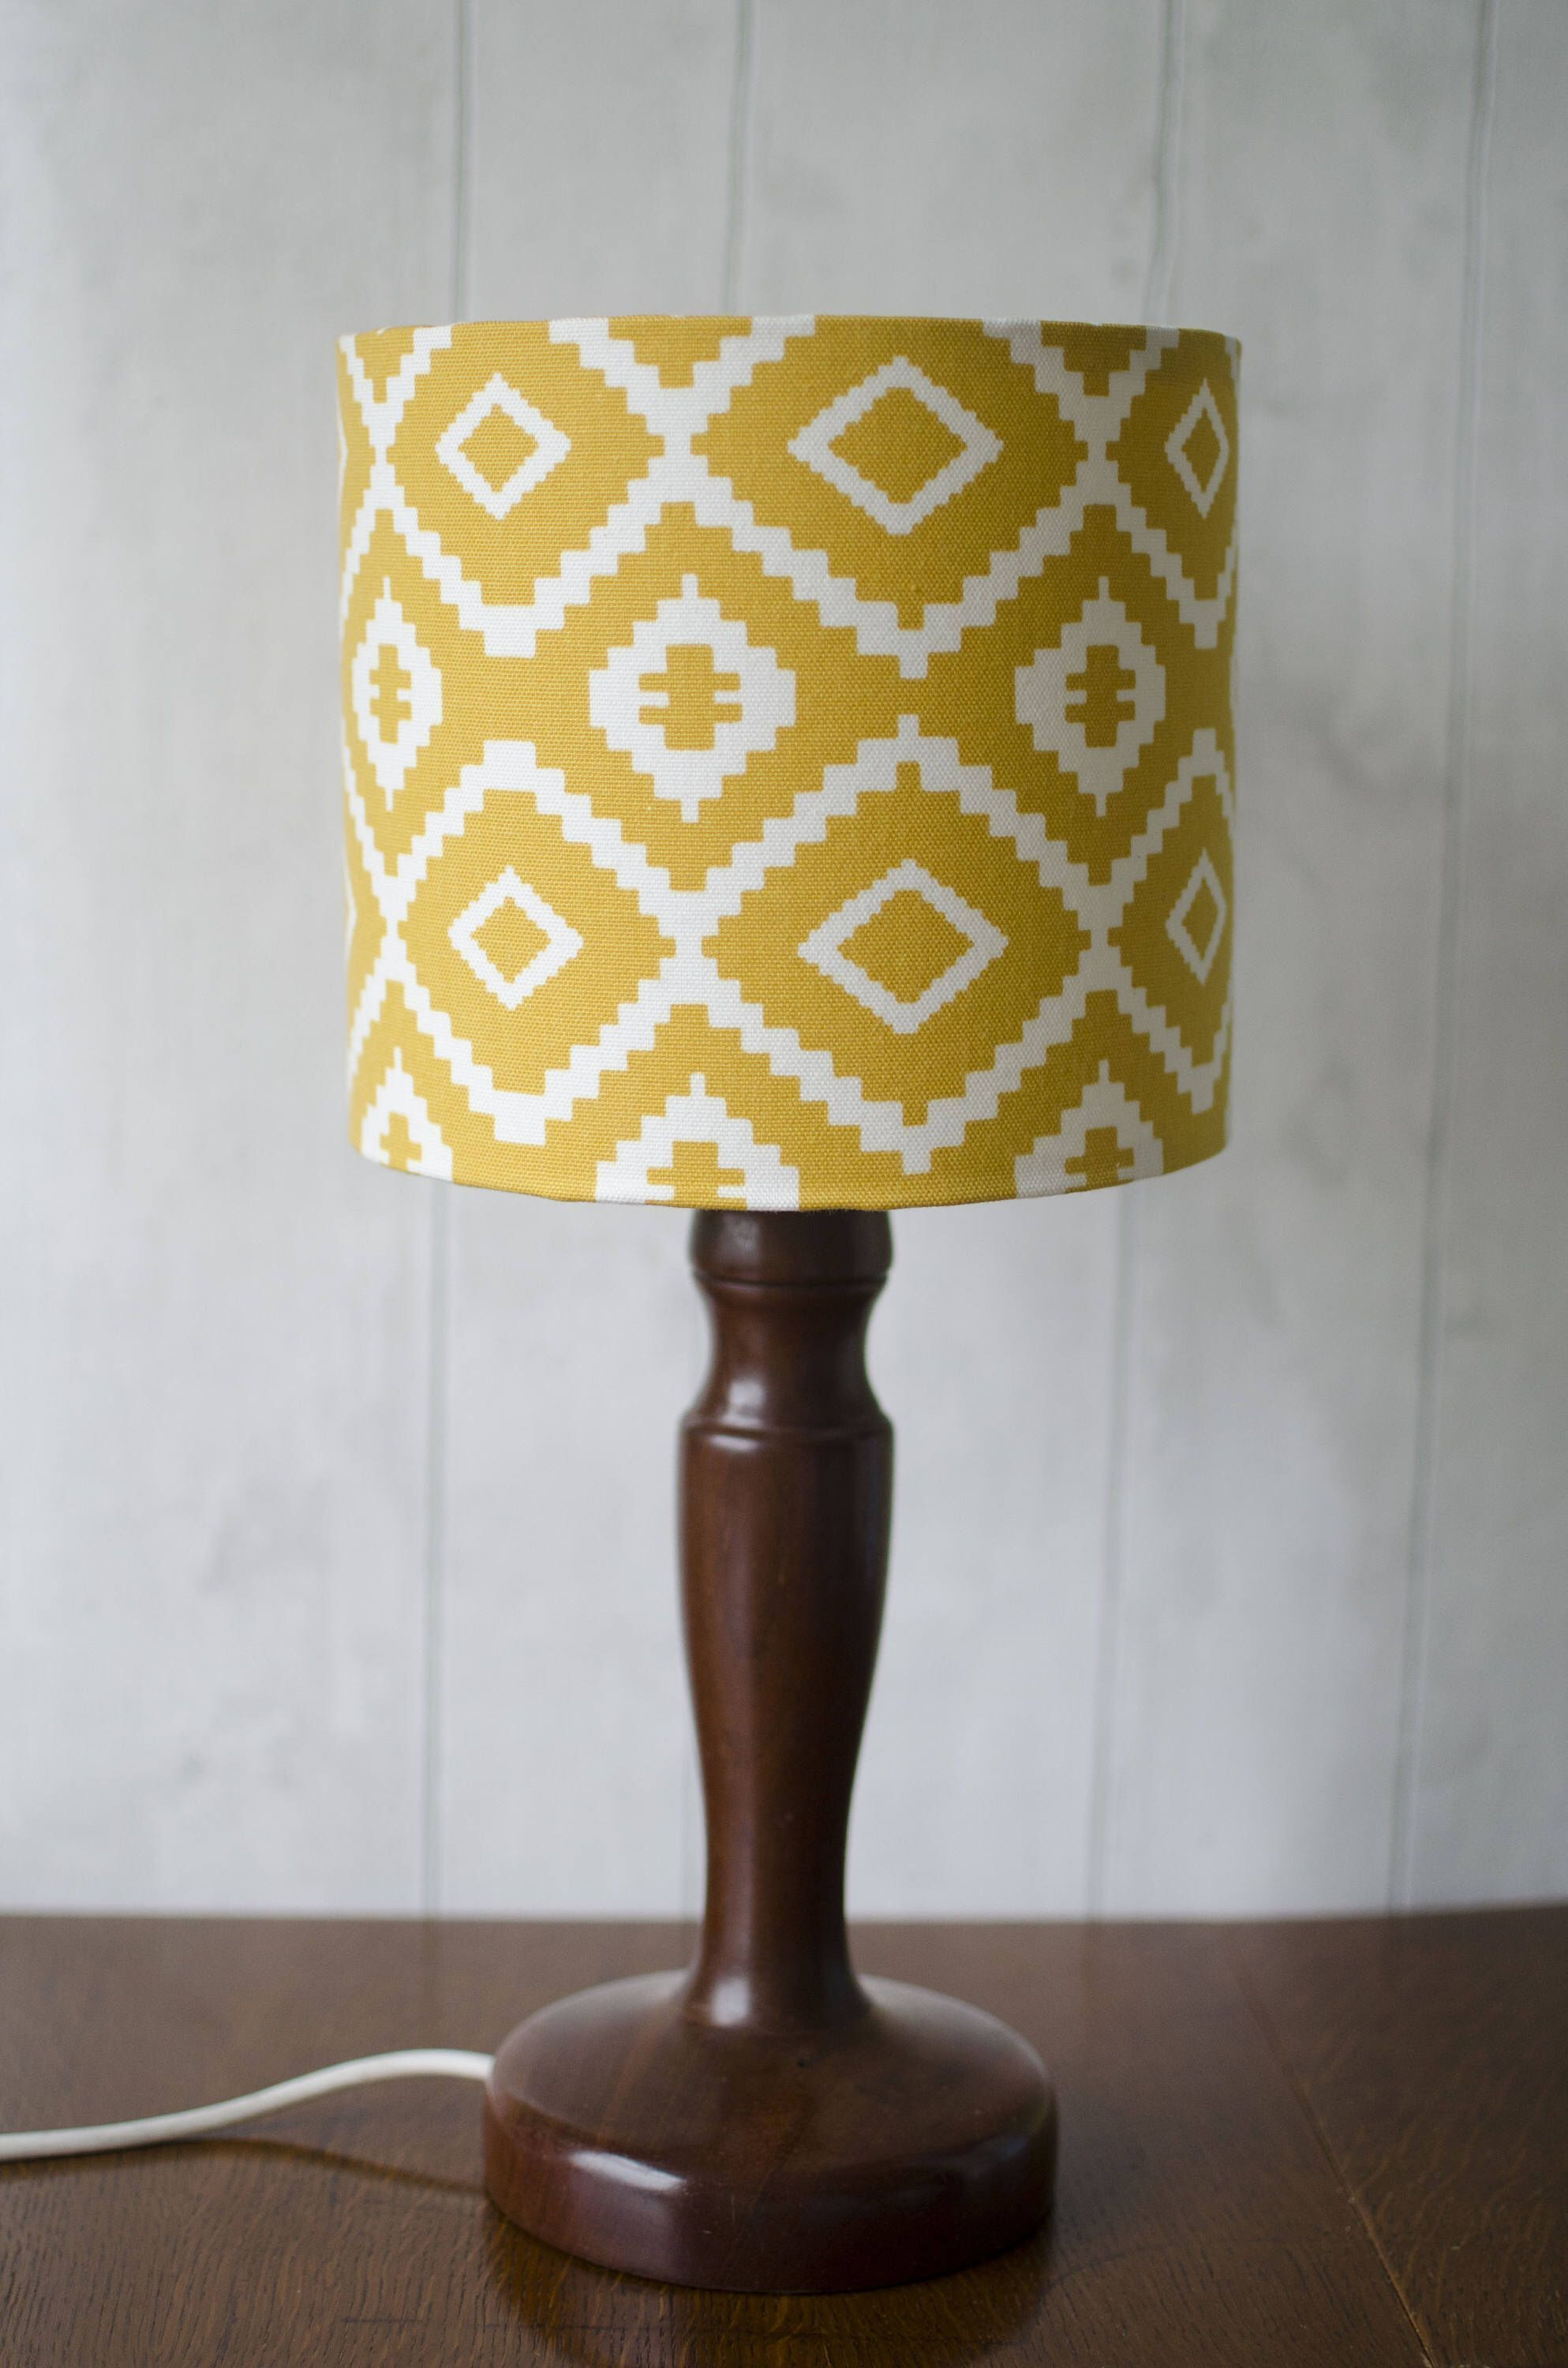 Lampshadeideasnosew Floor Lamp Shades Rustic Lamp Shades Aztec Decor